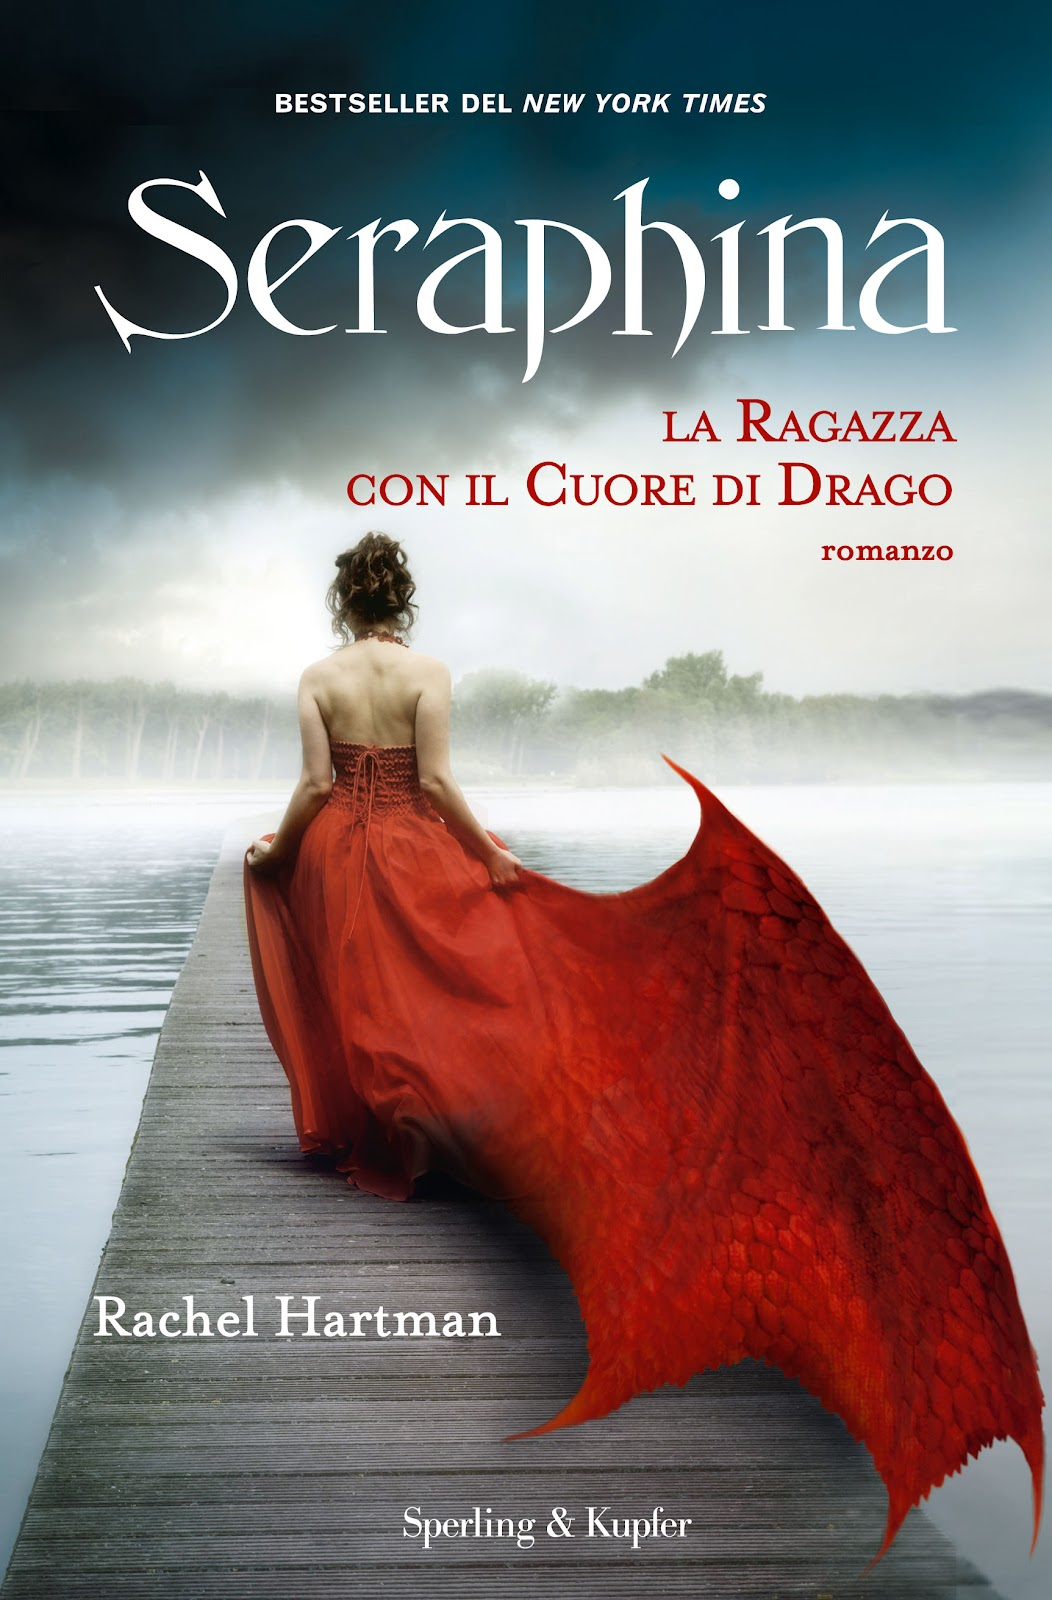 More about Seraphina